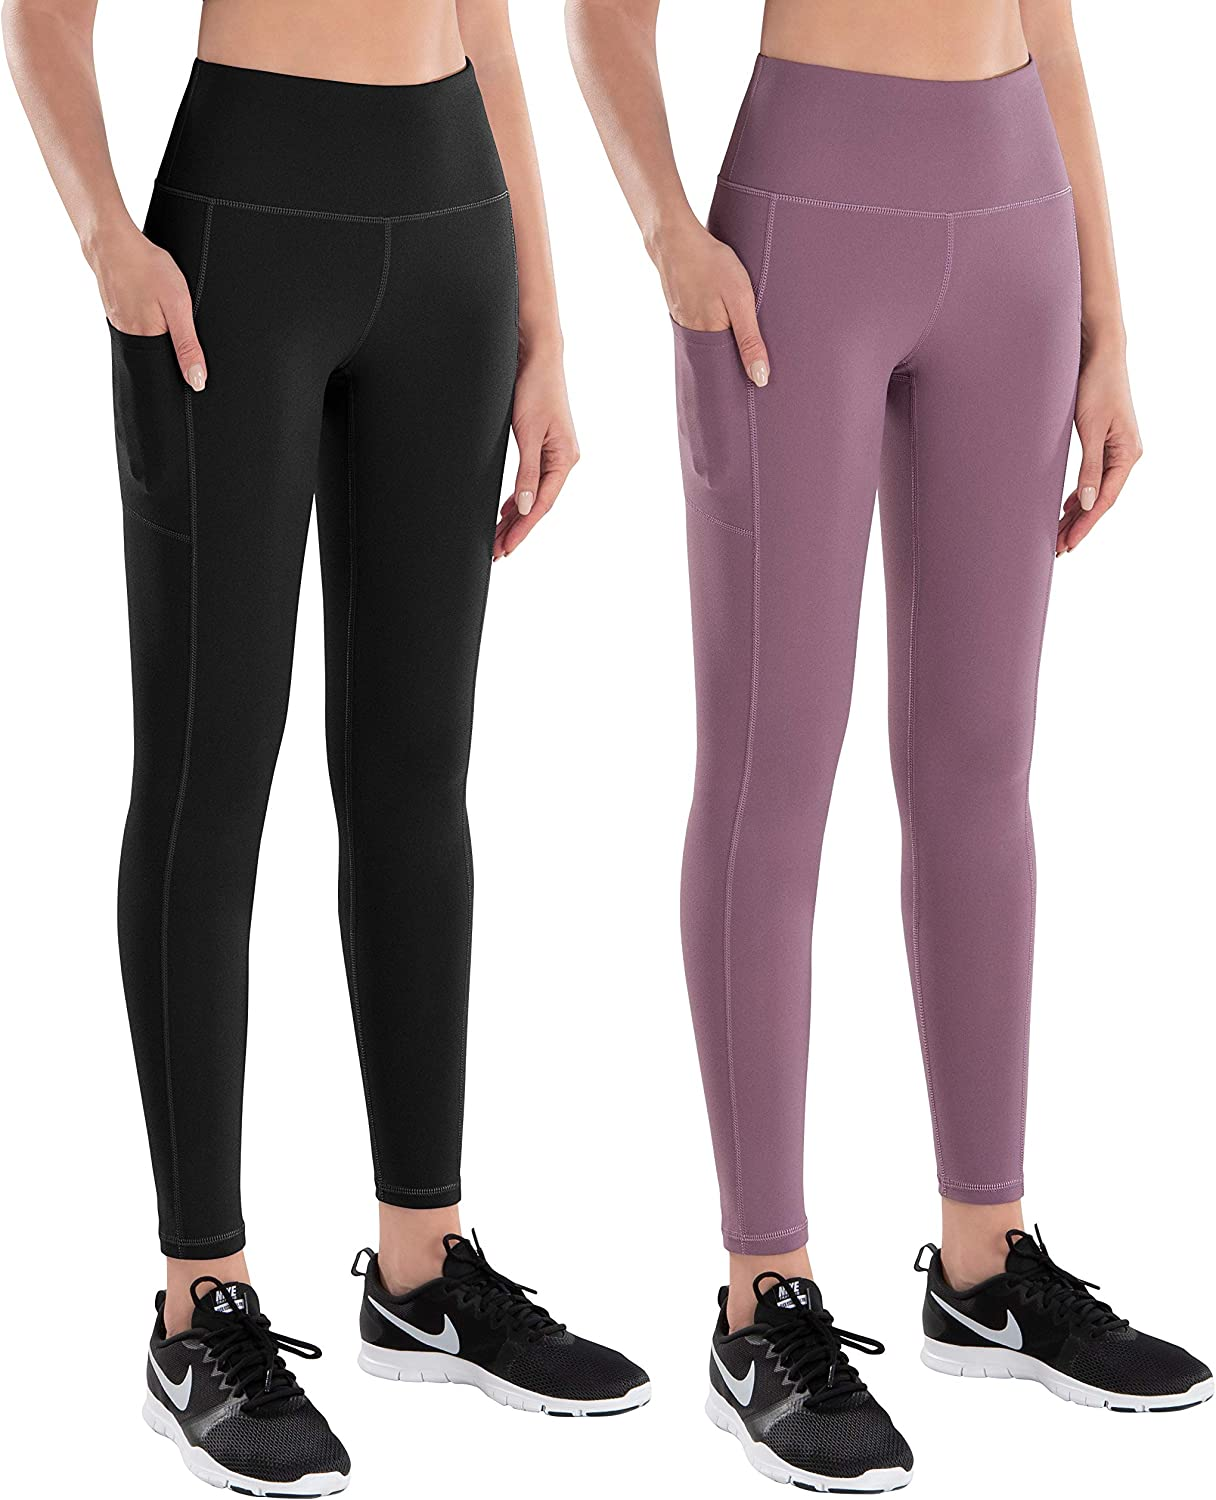 LifeSky Yoga Pants for Women with Pockets High Waist Tummy Control Leggings 4 Way Stretch Soft Athletic Pants